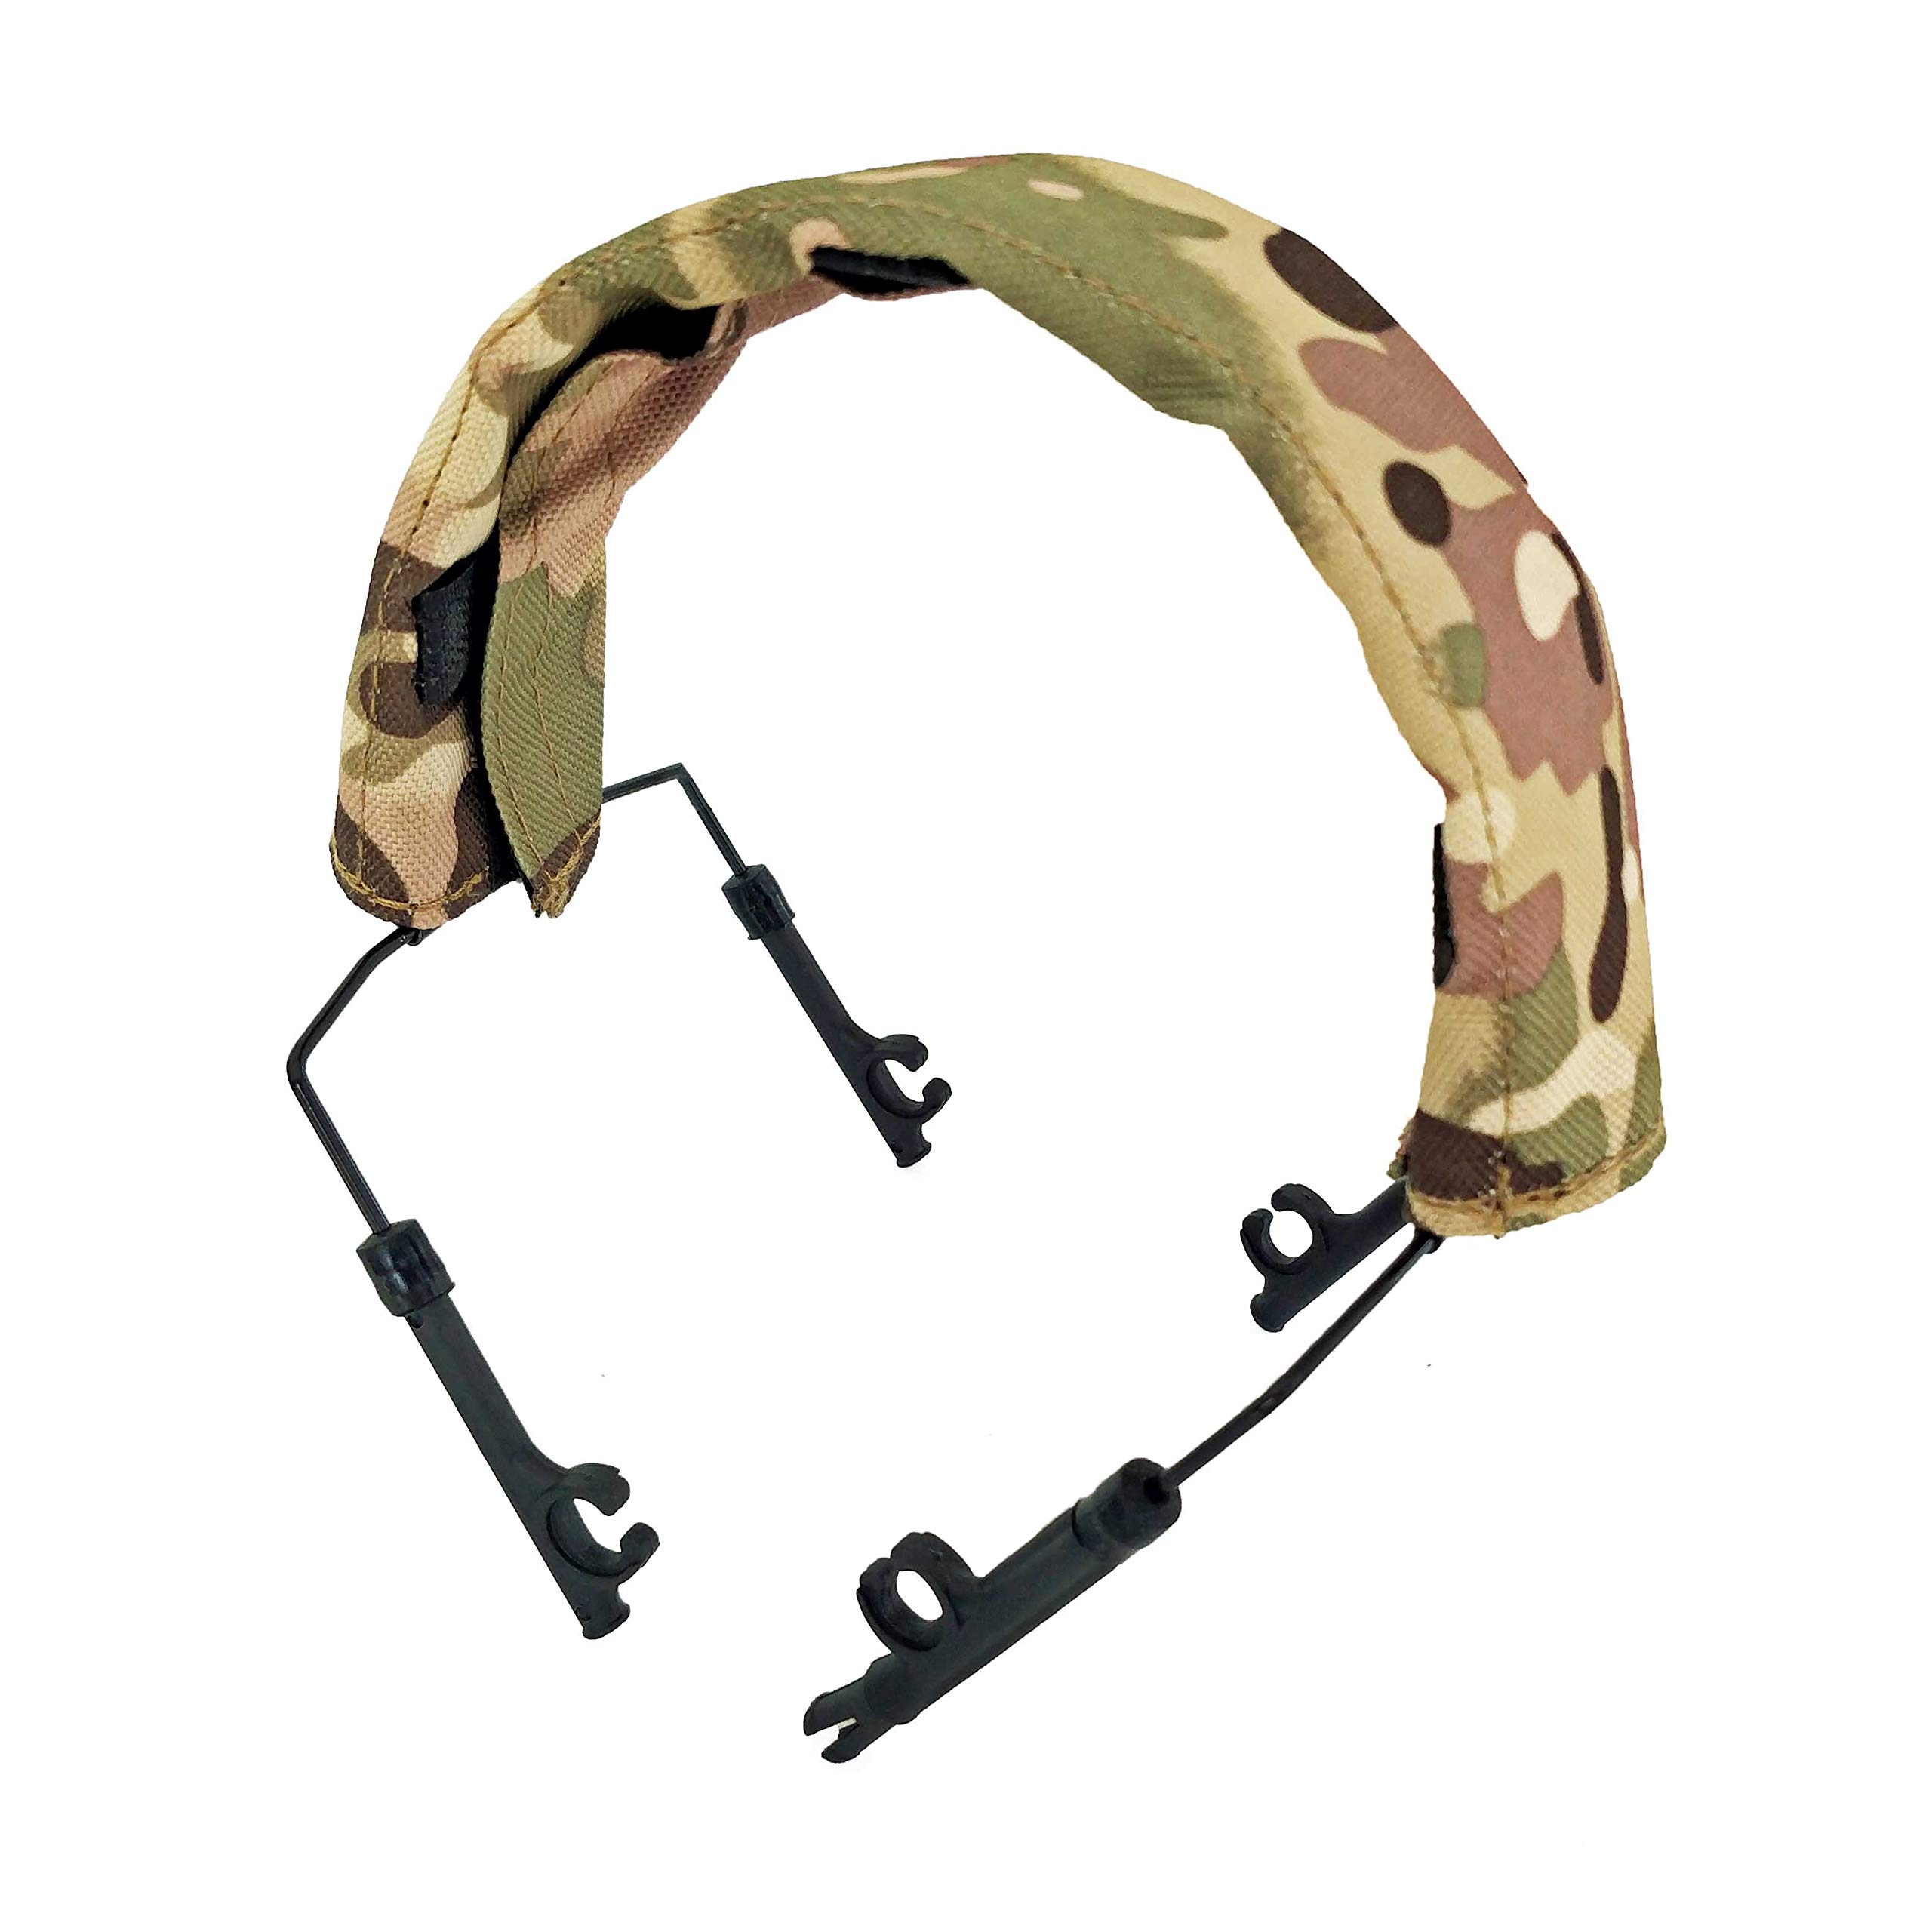 Armorwerx Replacement Headband for Peltor Comtac Ear Muffs